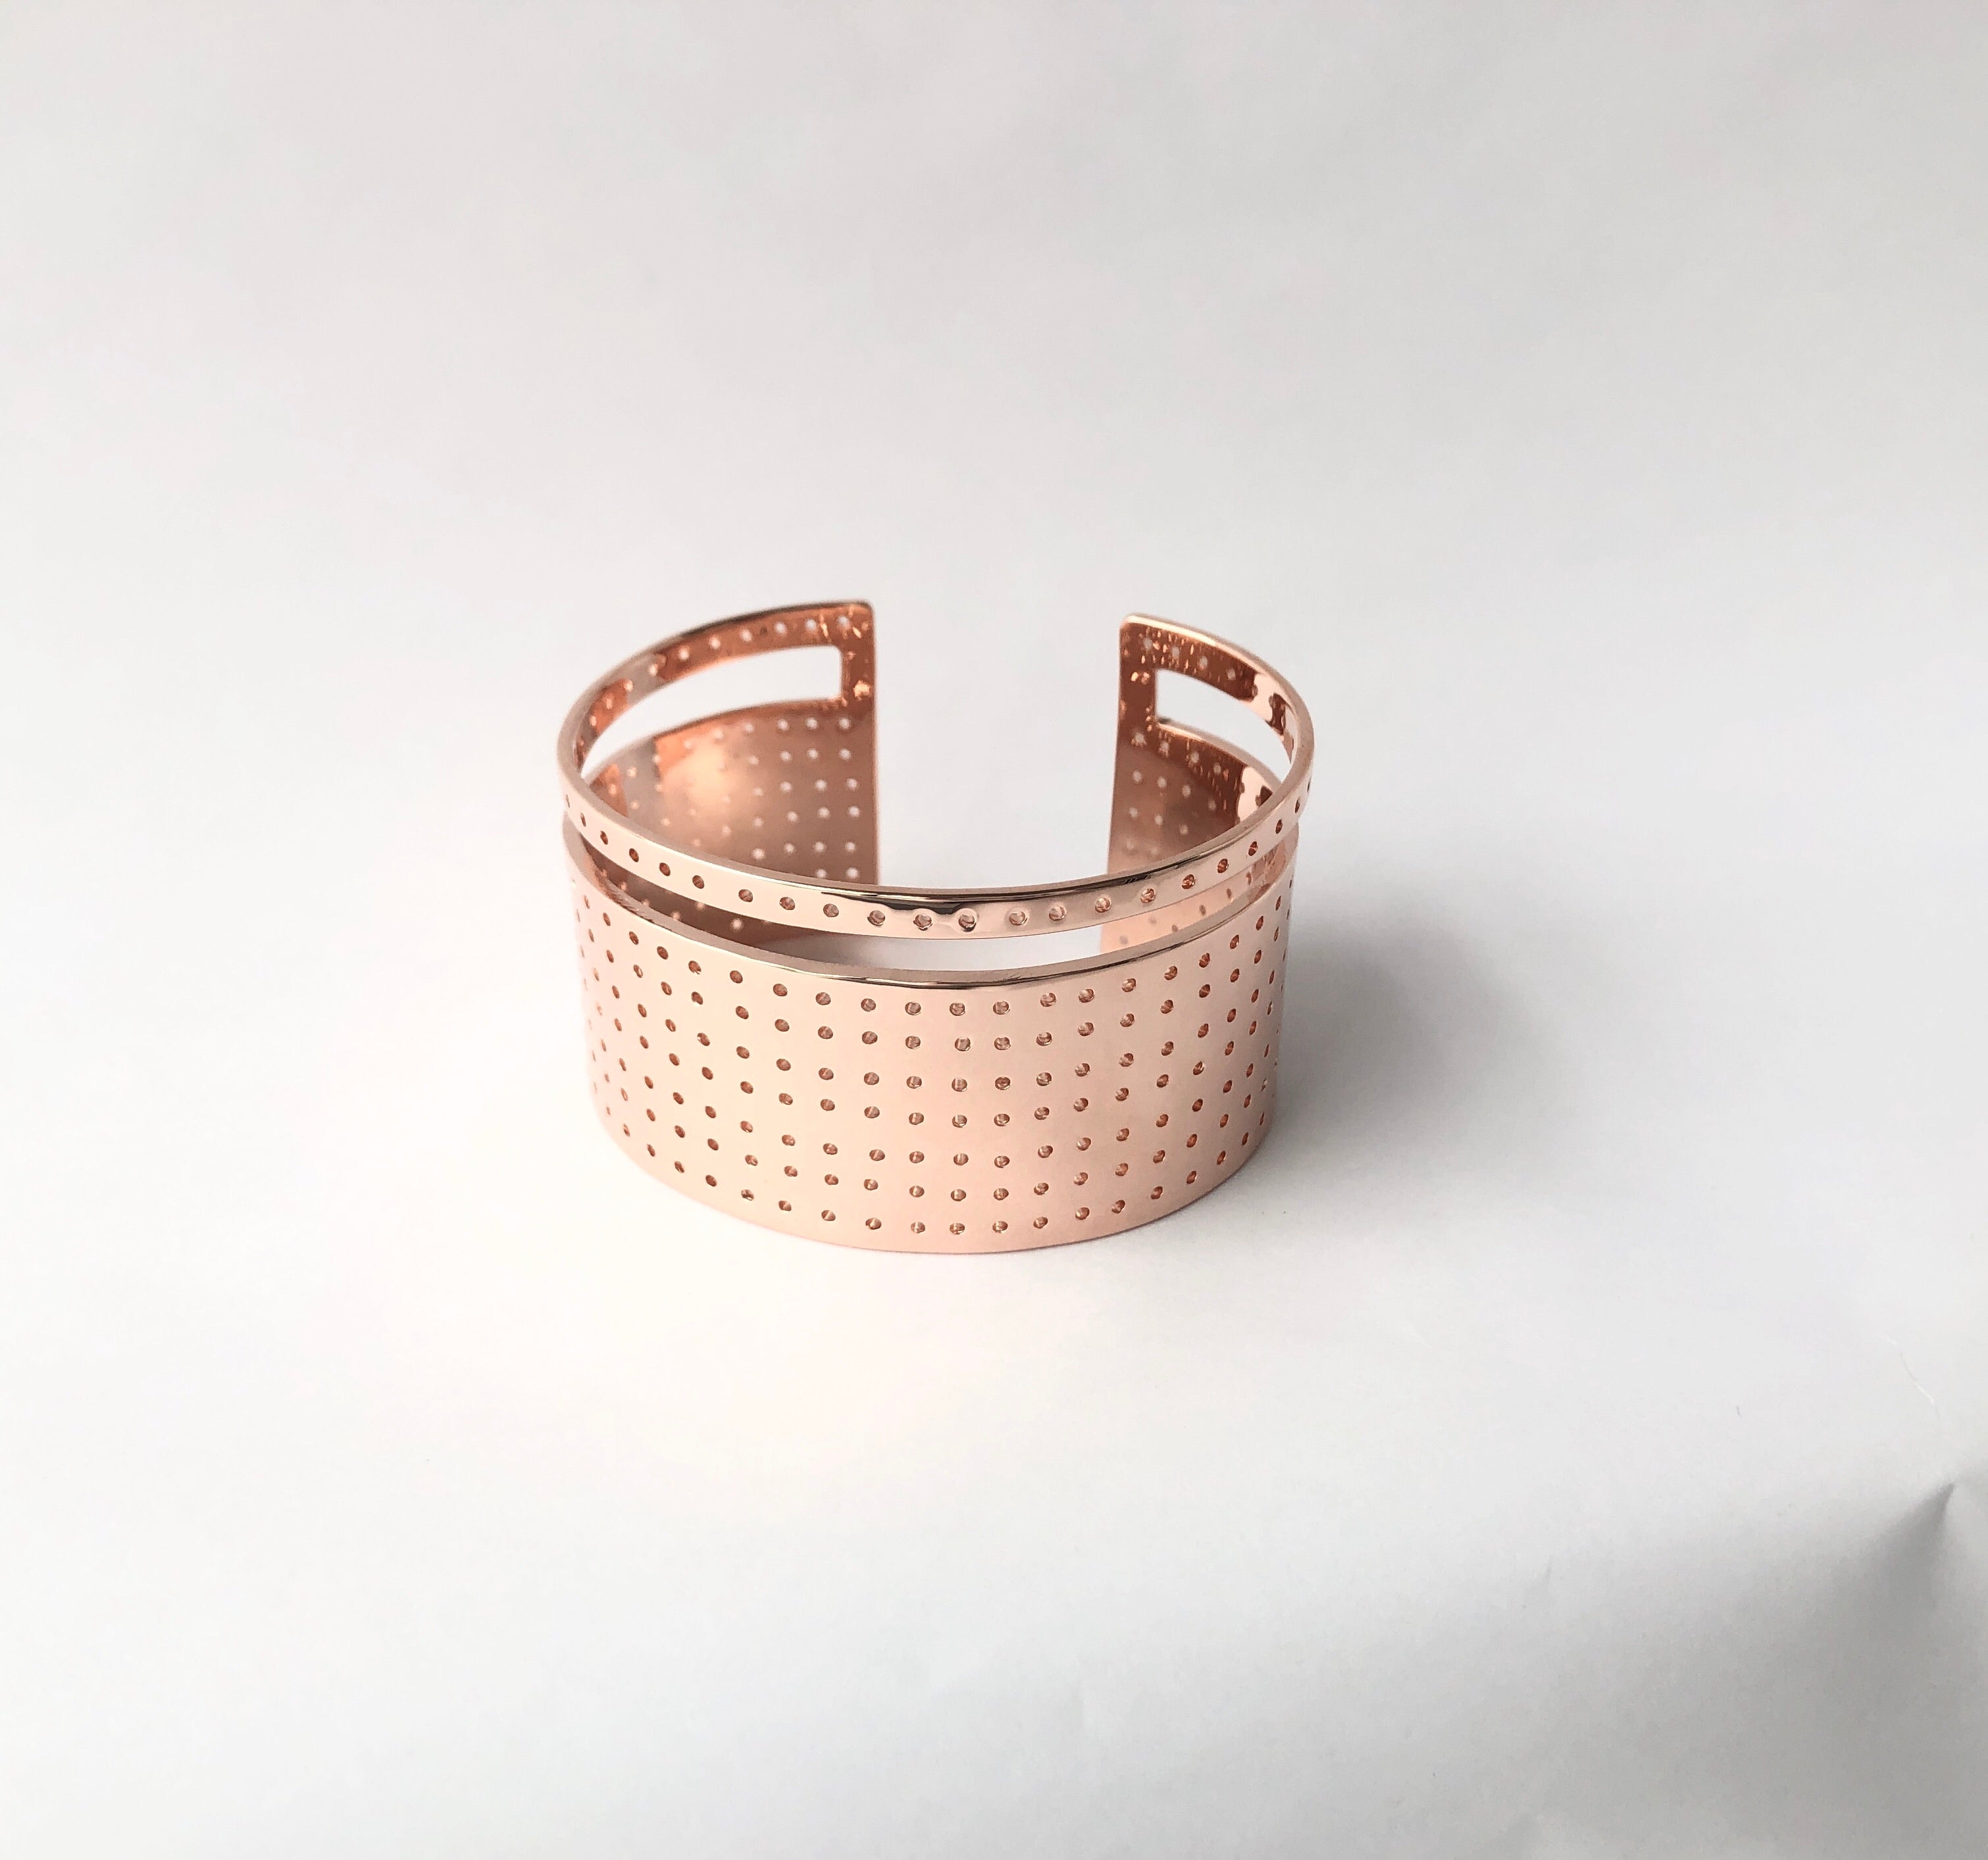 rosegold jewellery statement classic accessory breast cancer foundation singapore